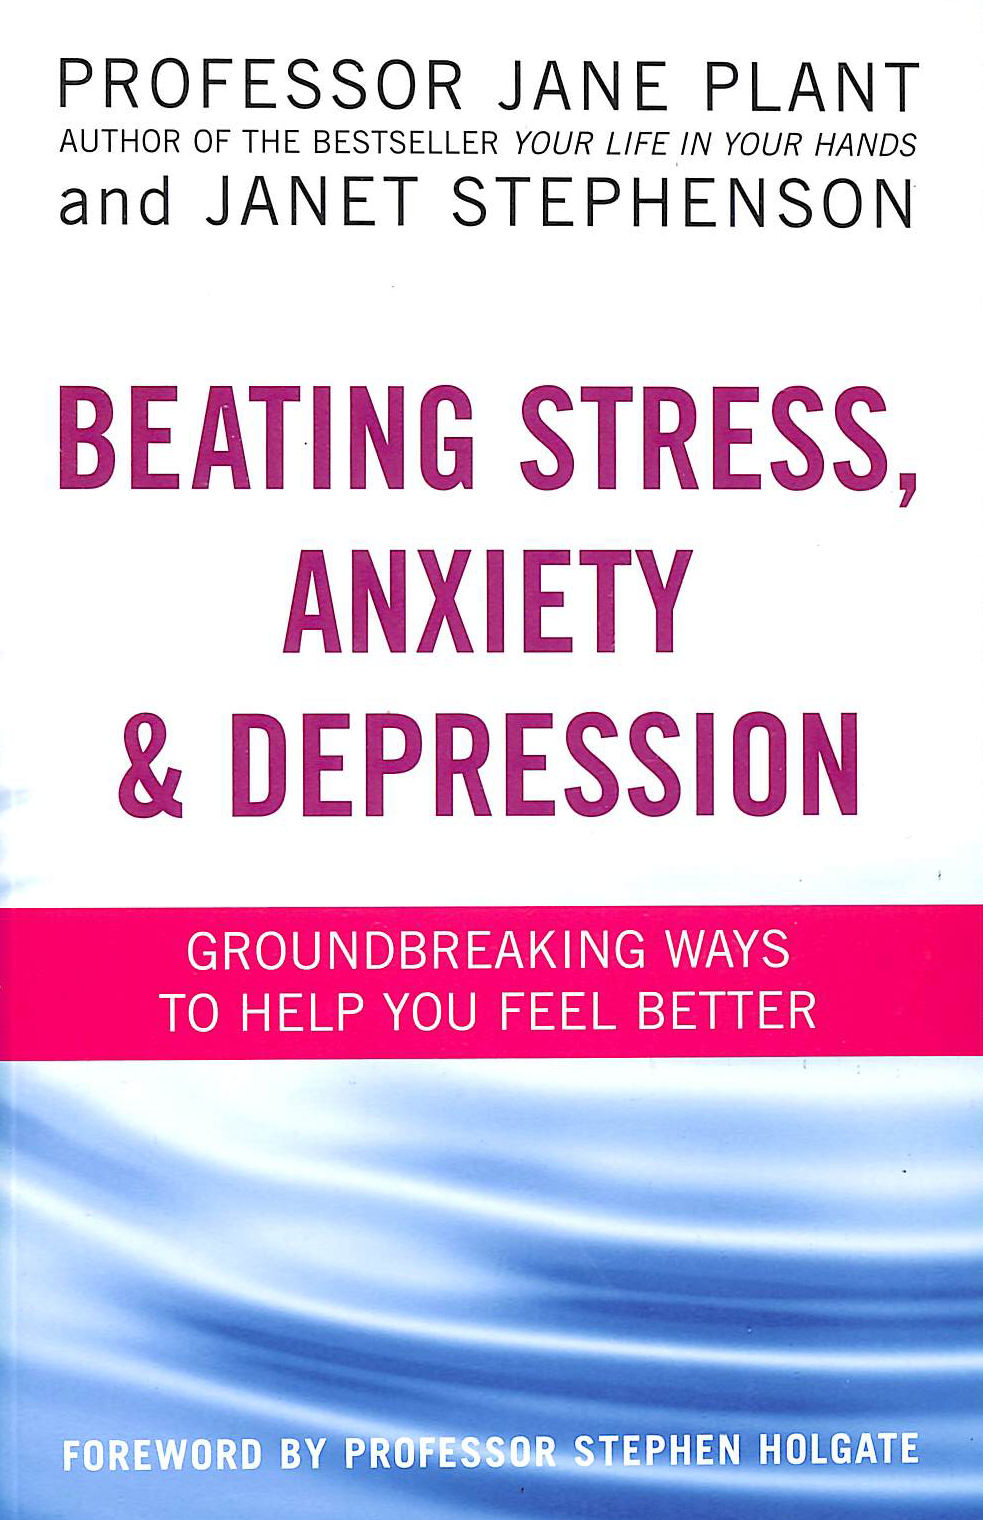 Image for Beating Stress, Anxiety And Depression: Groundbreaking Ways To Help You Feel Better